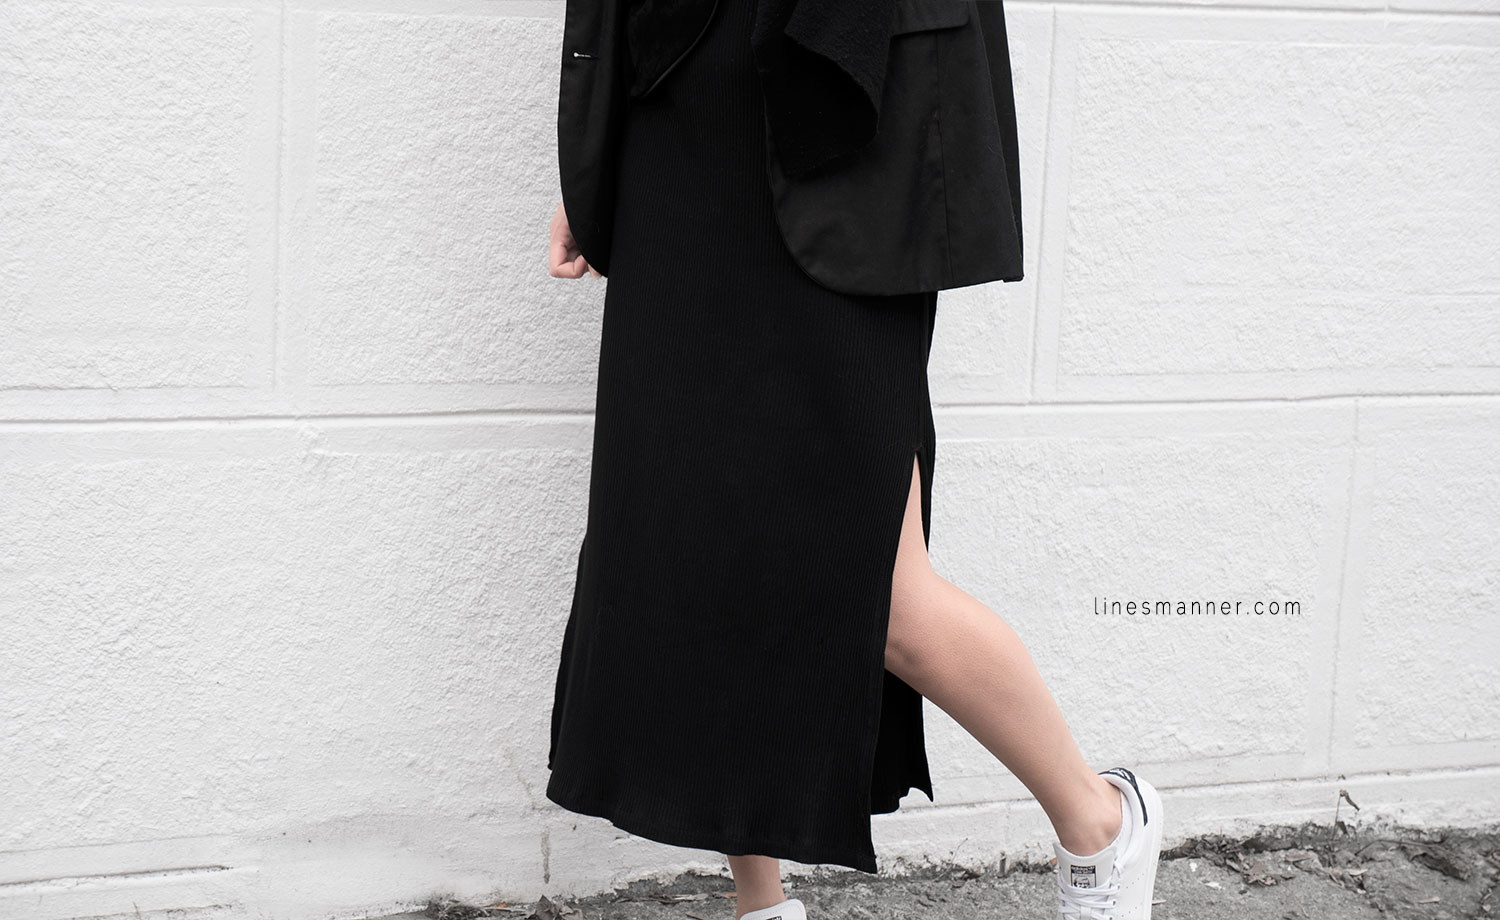 Lines-Manner-Black-Relaxed-Tone_on_Tone-Monochrome-Minimal-Sophistication-Comfort-Modern-Simplicity-Casual-Sporty_Luxe-Slit_Dress-Thrid_Form-Blazer-Essentials-Details-Basics-Timeless-Verstatile-Staple-Wardrobe-Sleek-Clean_Lines-All_Black_Everything-5